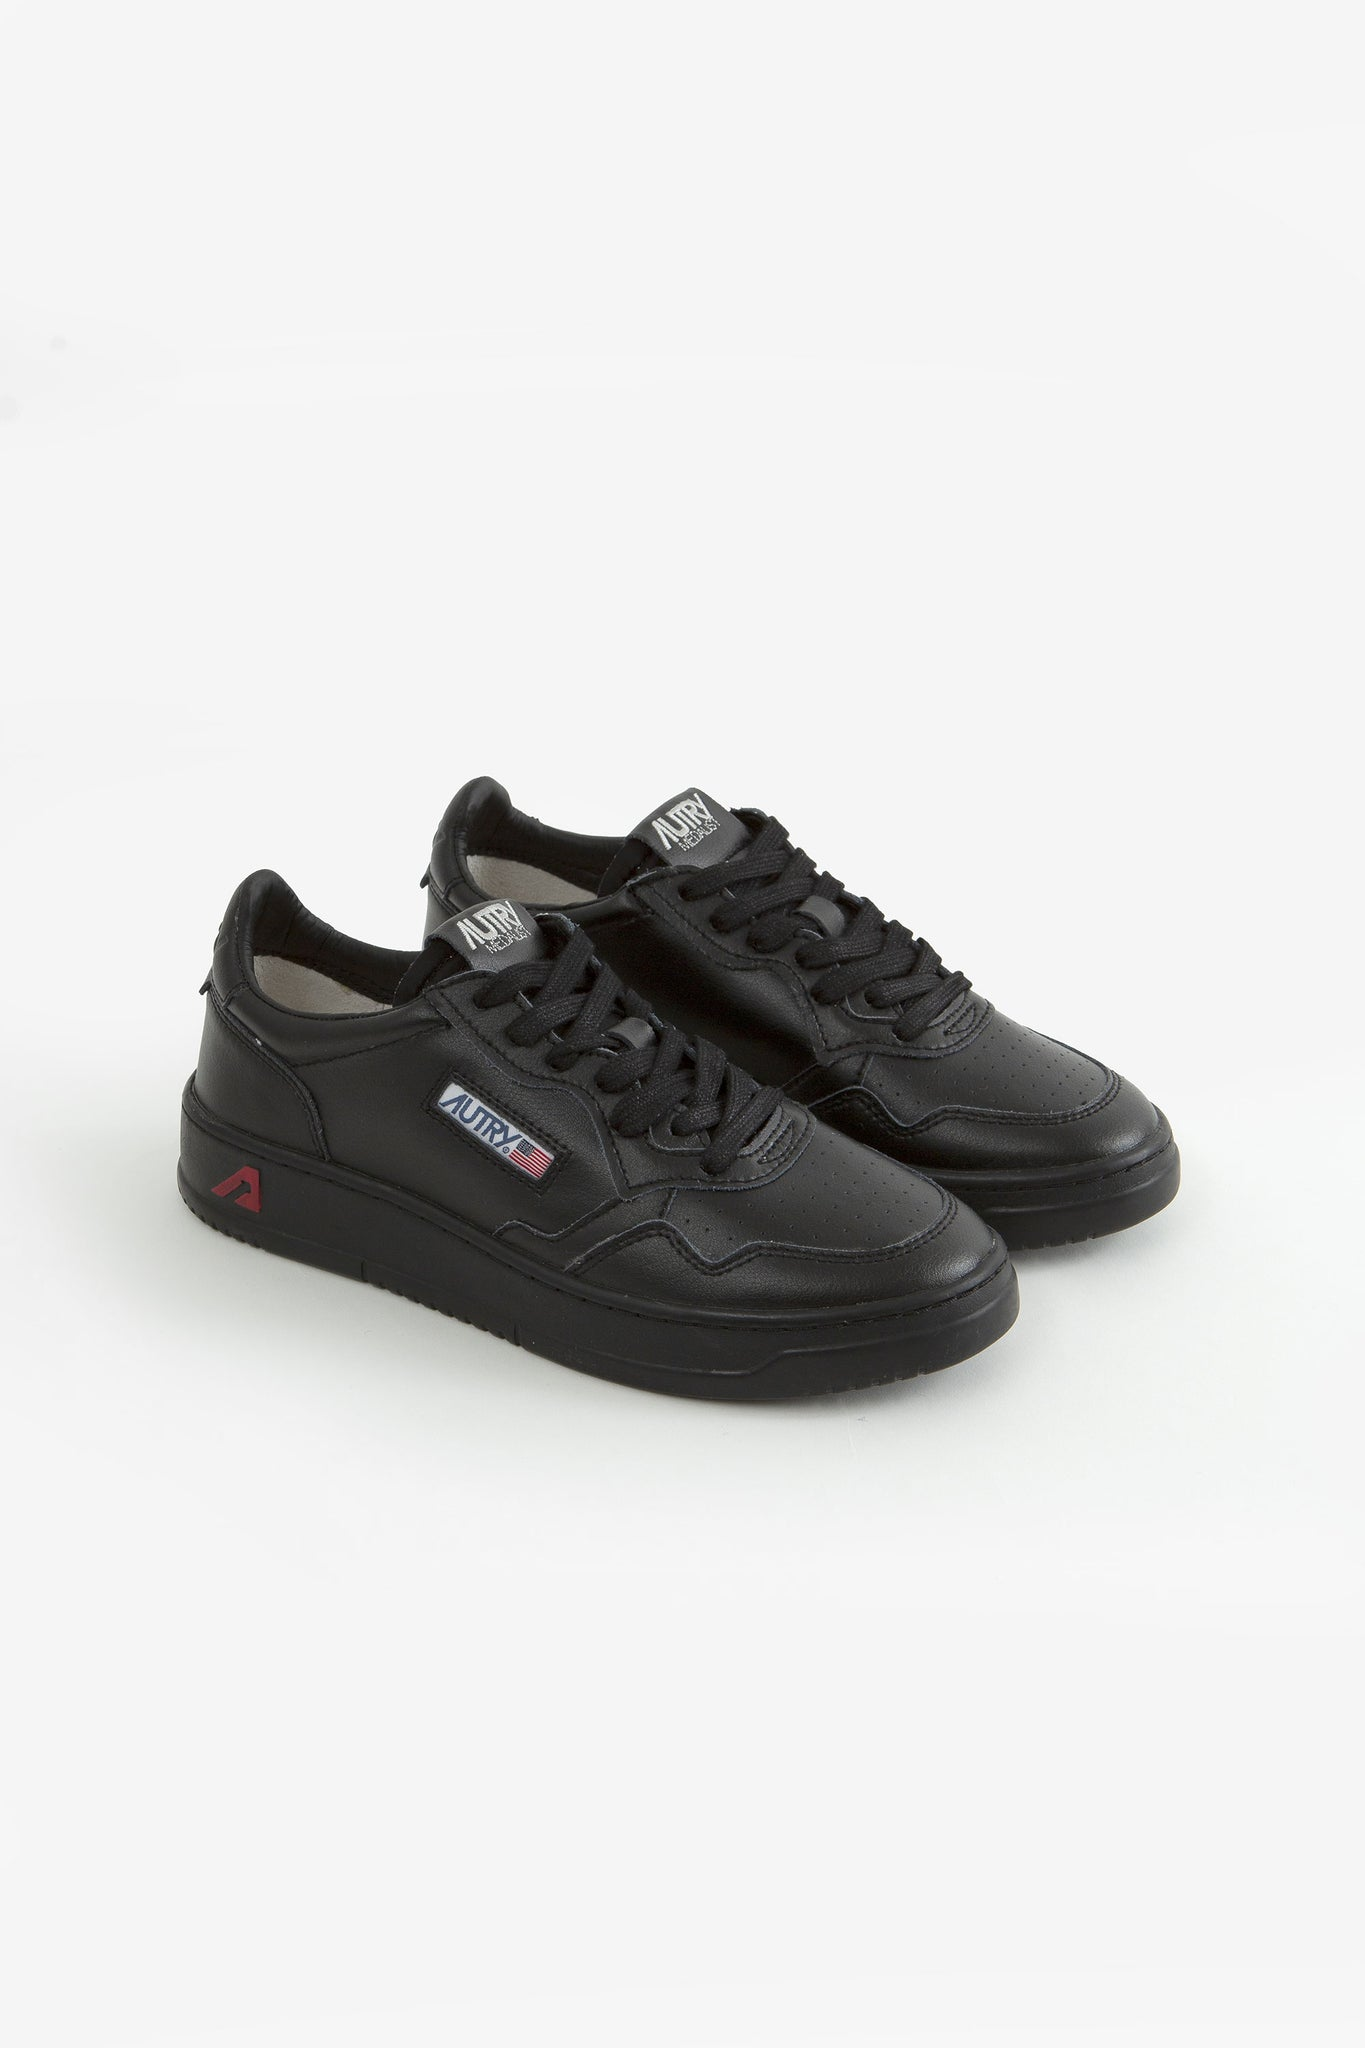 Low sneakers leat/leat black